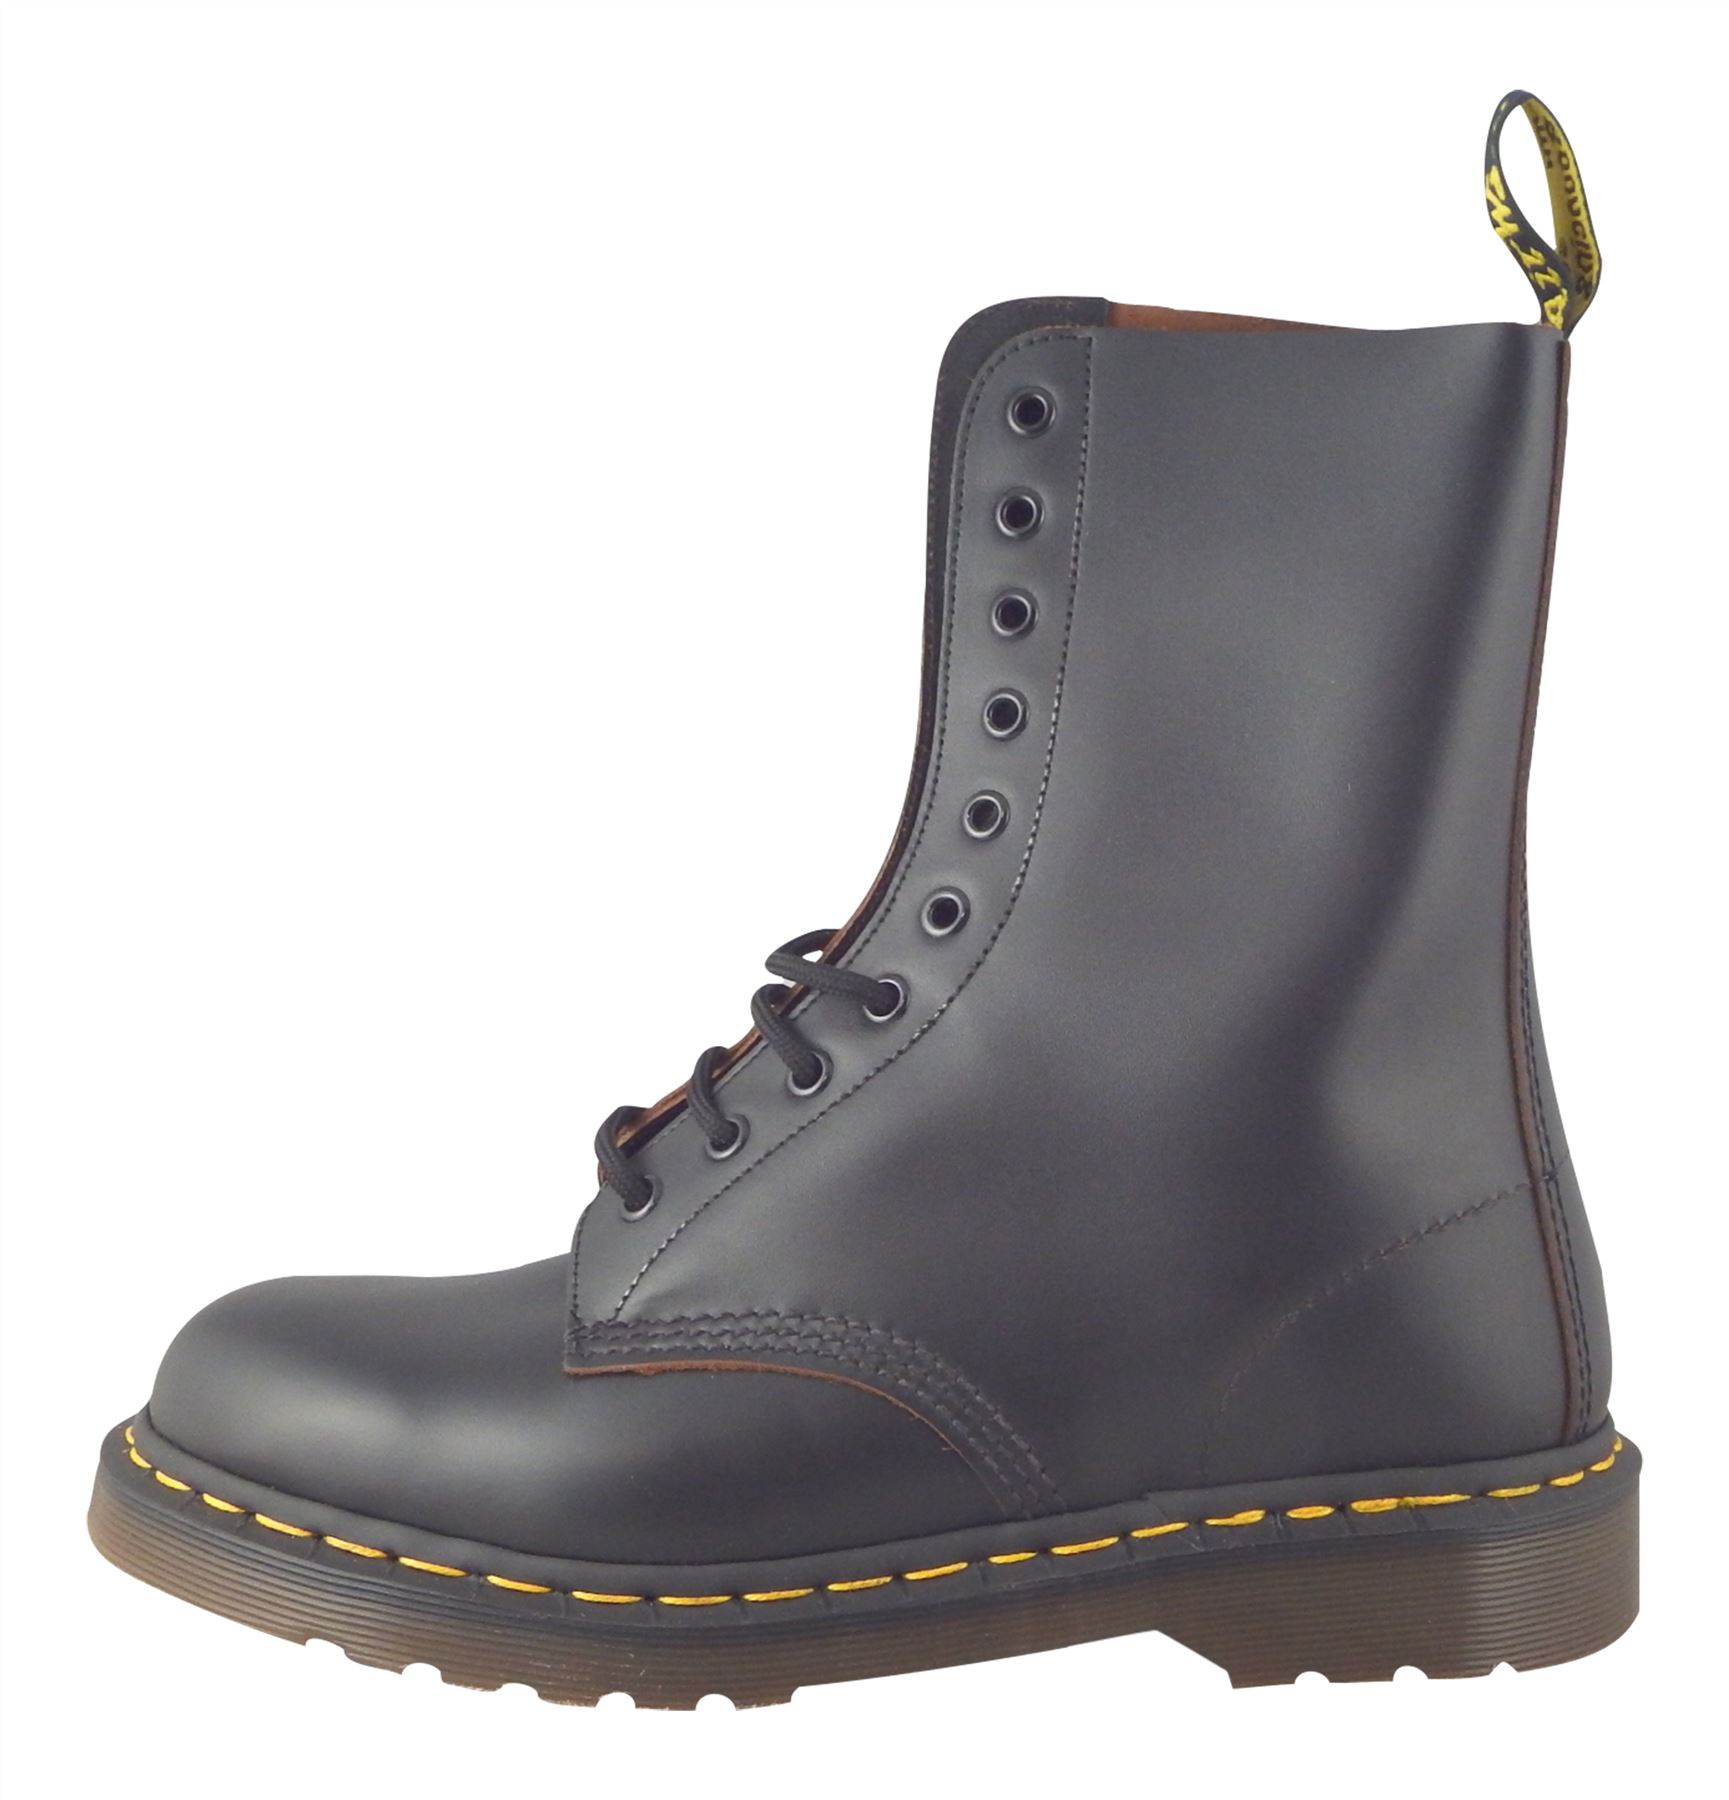 Dr-Martens-1490-Made-in-England-MIE-in-